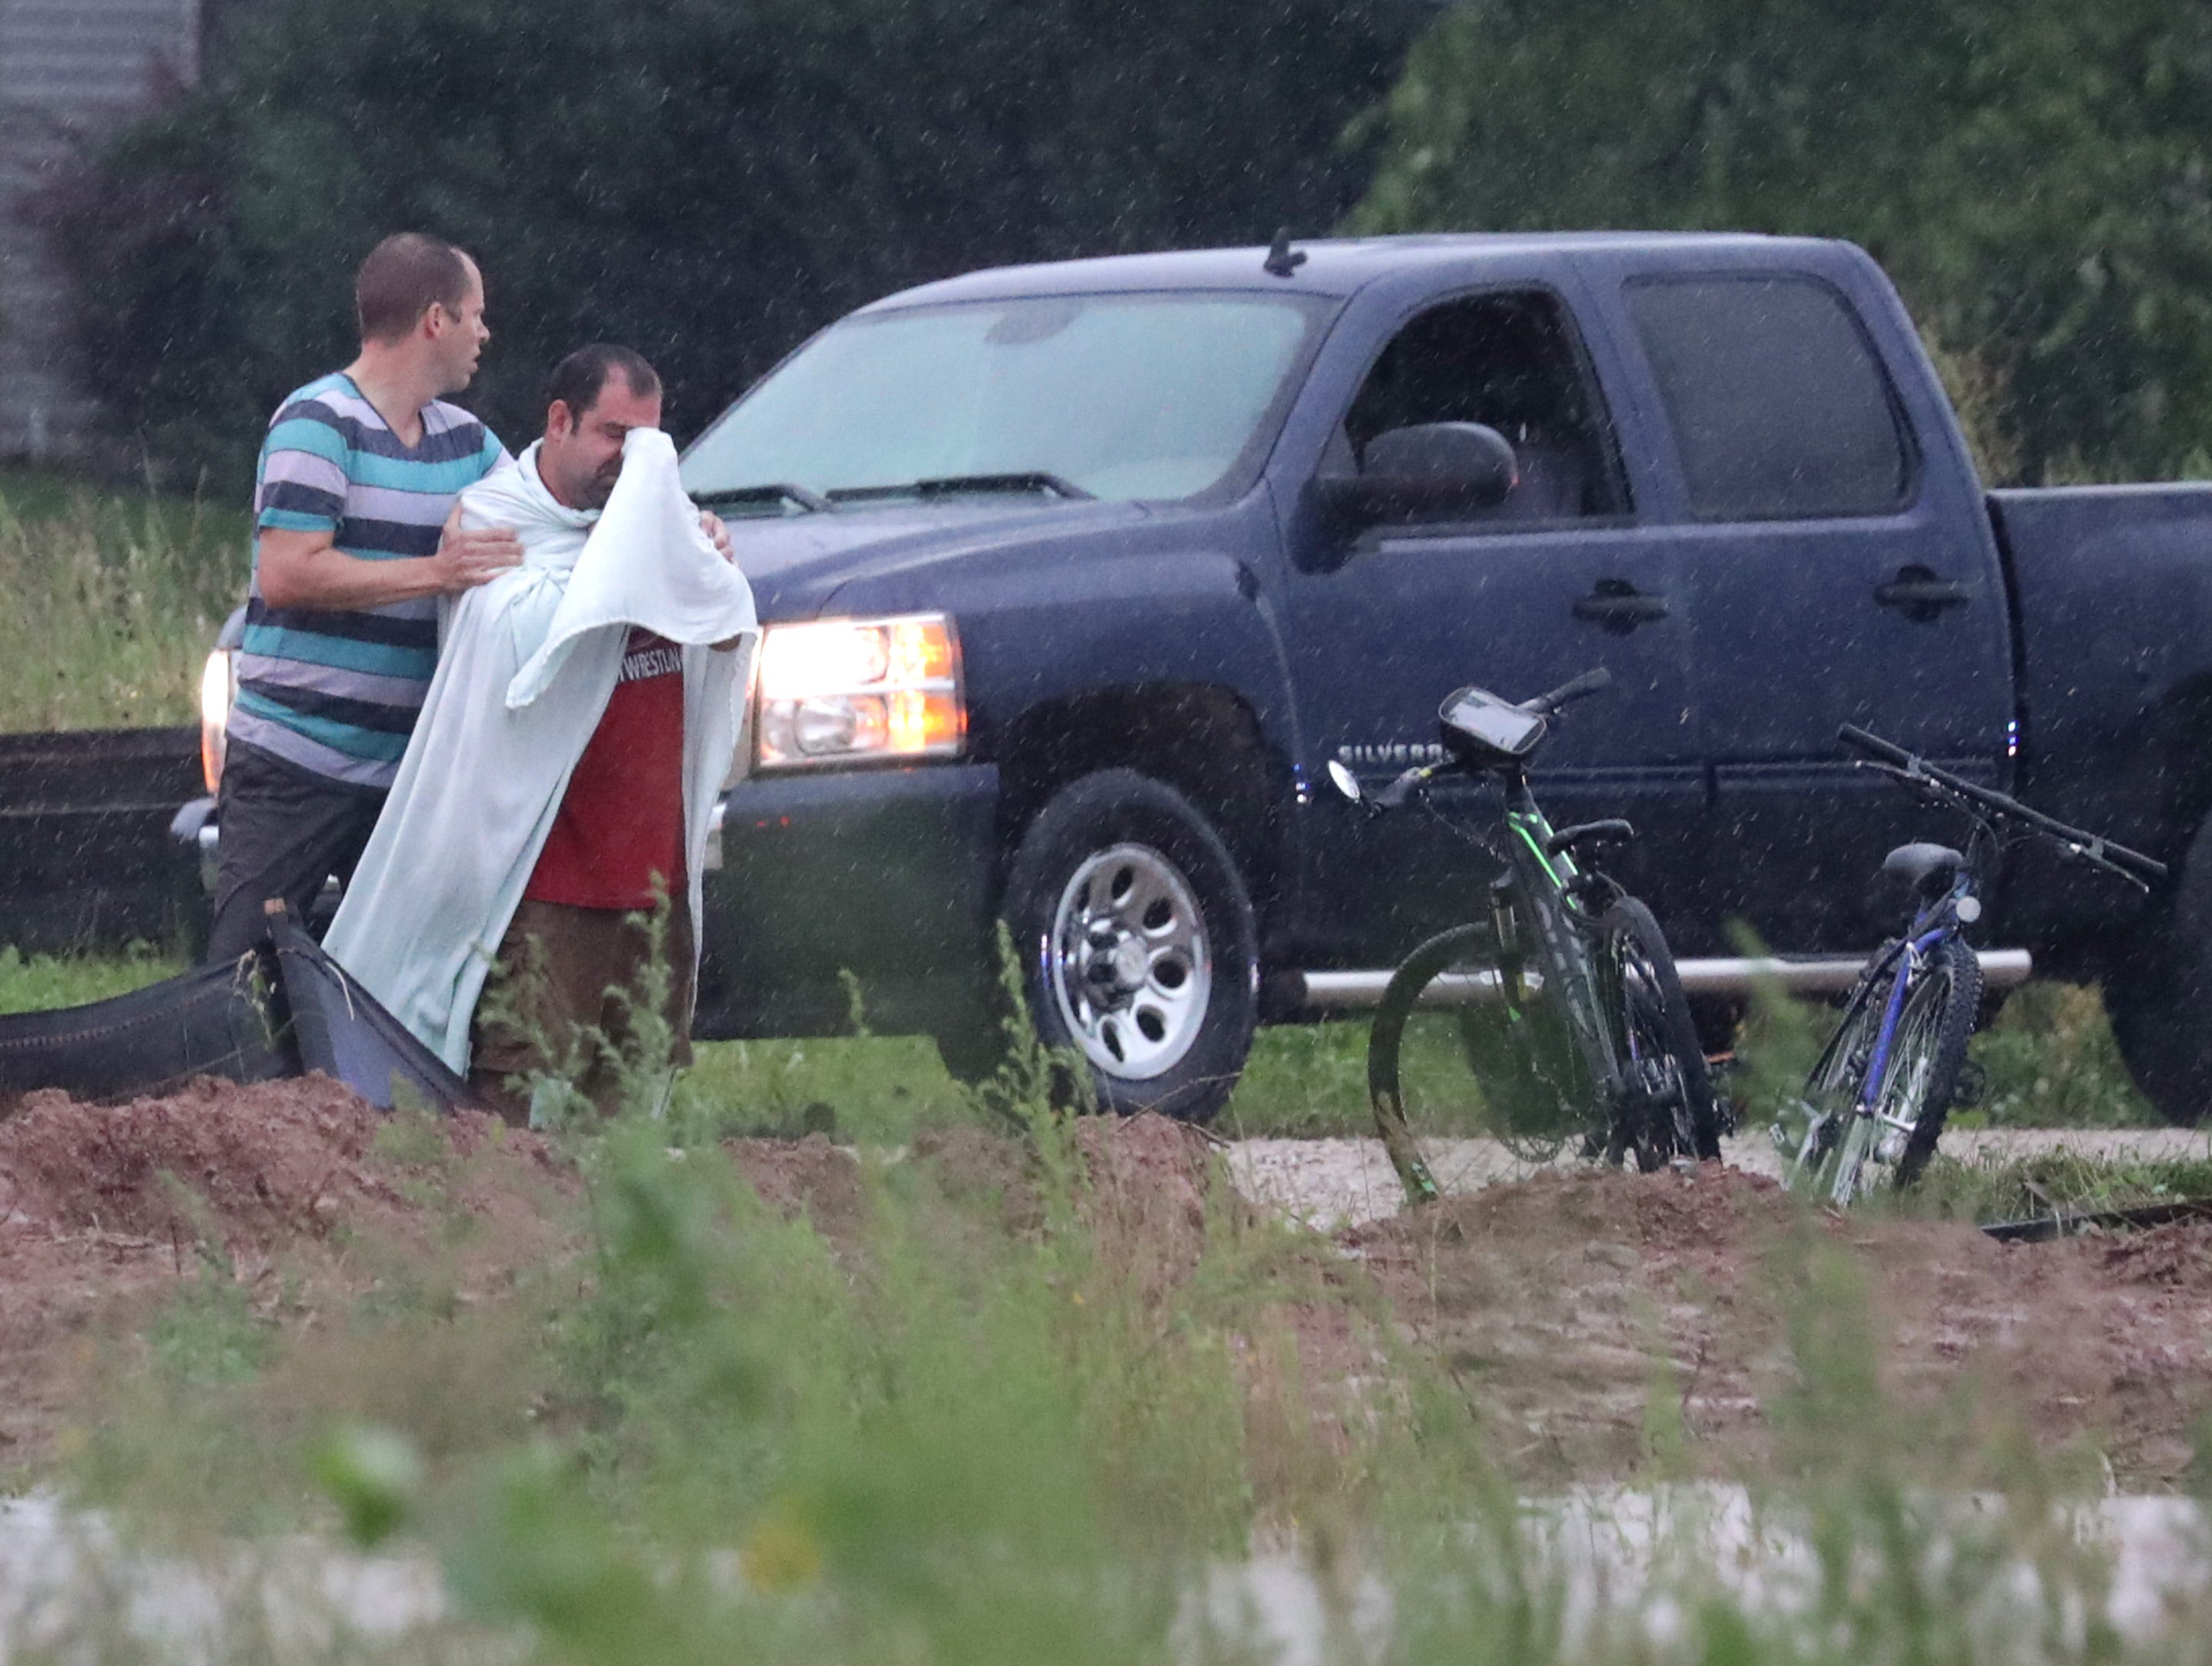 The father of a missing child waits  as Emergency responders, police and firefighters search for the 11 year old boy who dissapeared beneath the water of a drainage ditch while playing with friends on Tuesday, August 28, 2018, in Harrison, Wis. The boy was found, alive, in an air pocket beneath a manhole cover about thirty feet from the place he went missing.